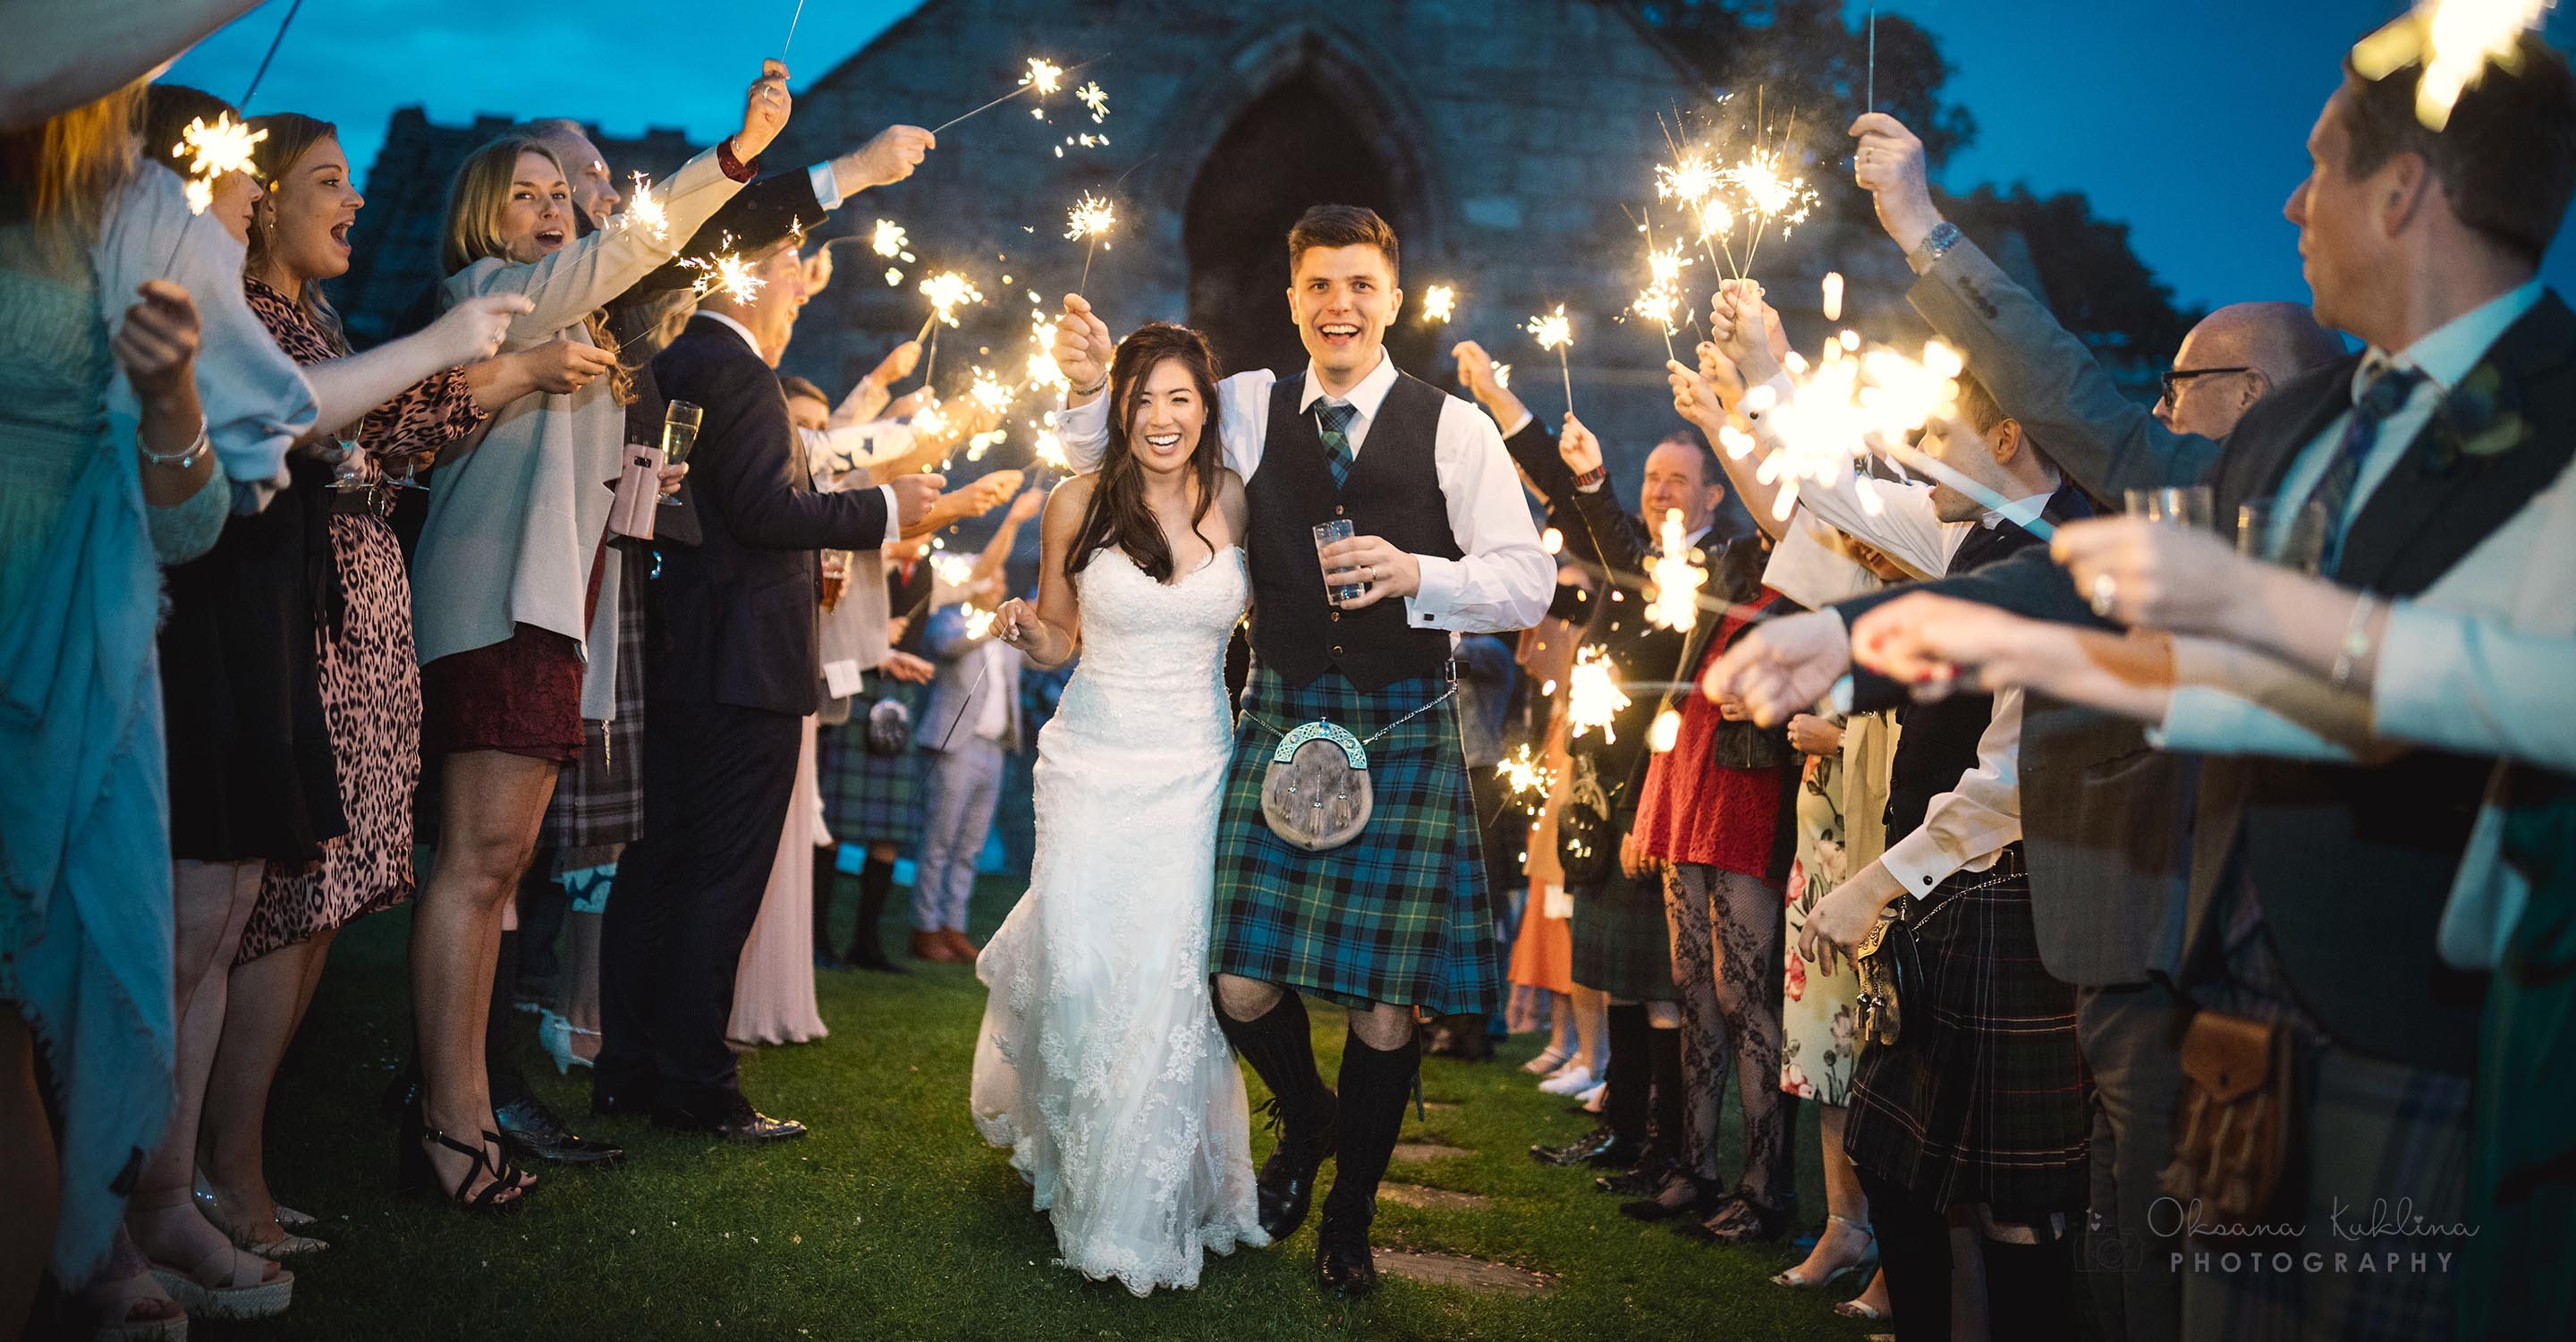 Dunglass Estate Wedding Photographer - Alternative Scotland Wedding Photography- Romantic Wedding at Dunglass Estate